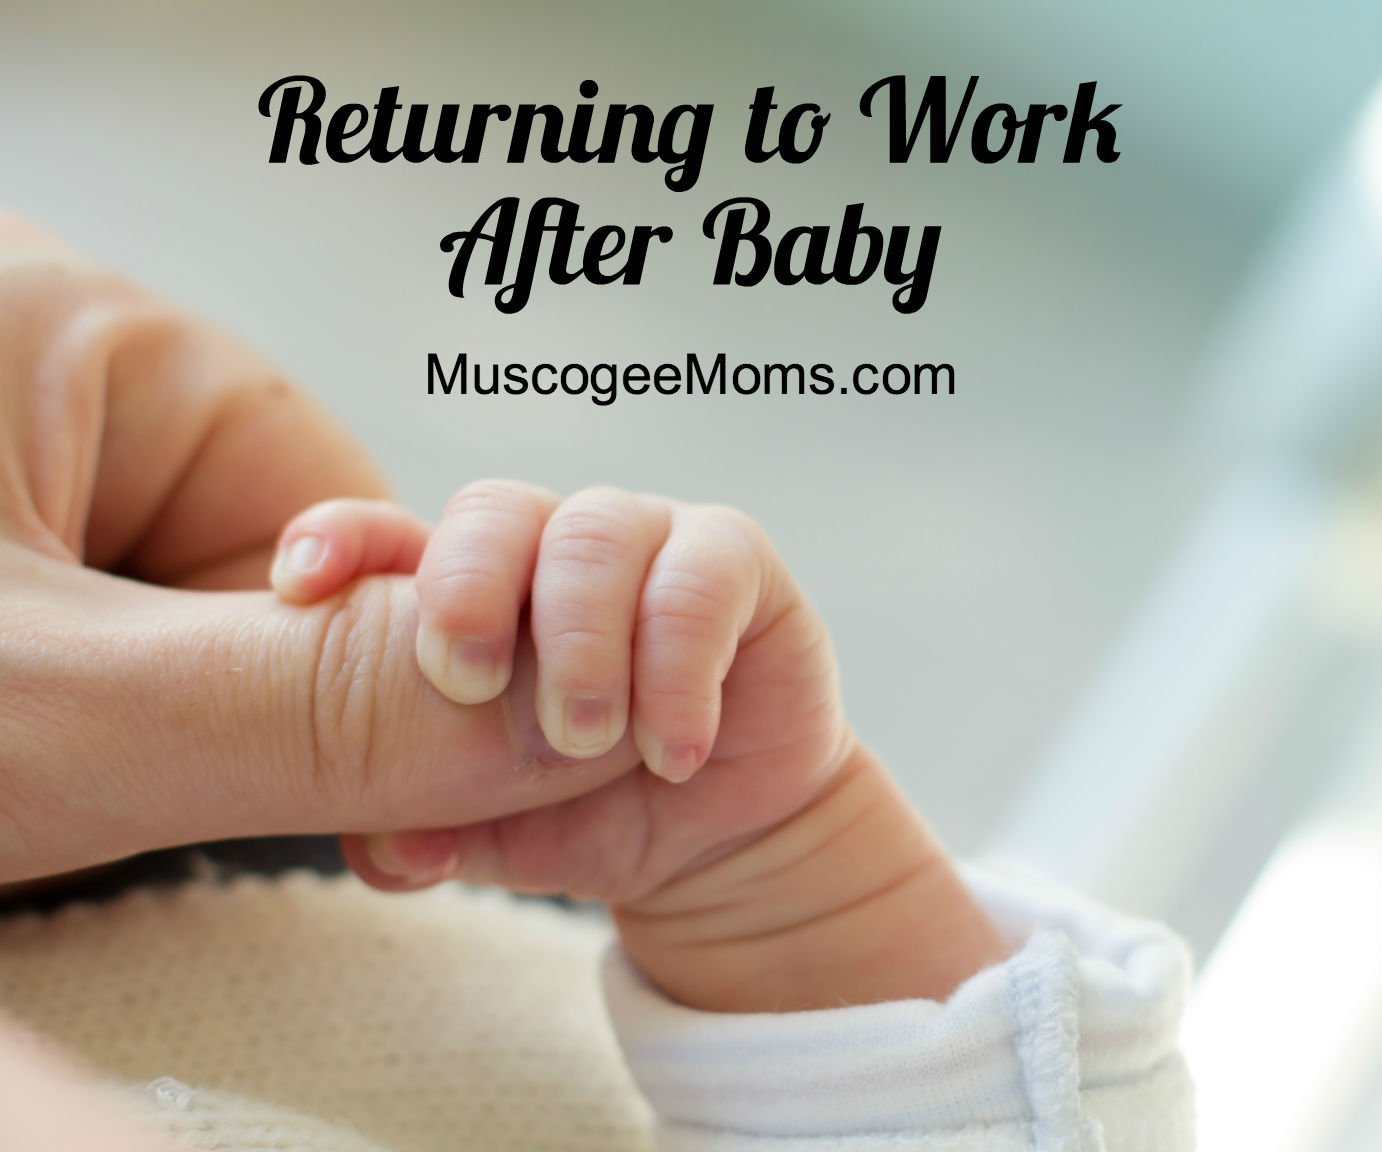 Back to Work After Maternity Leave